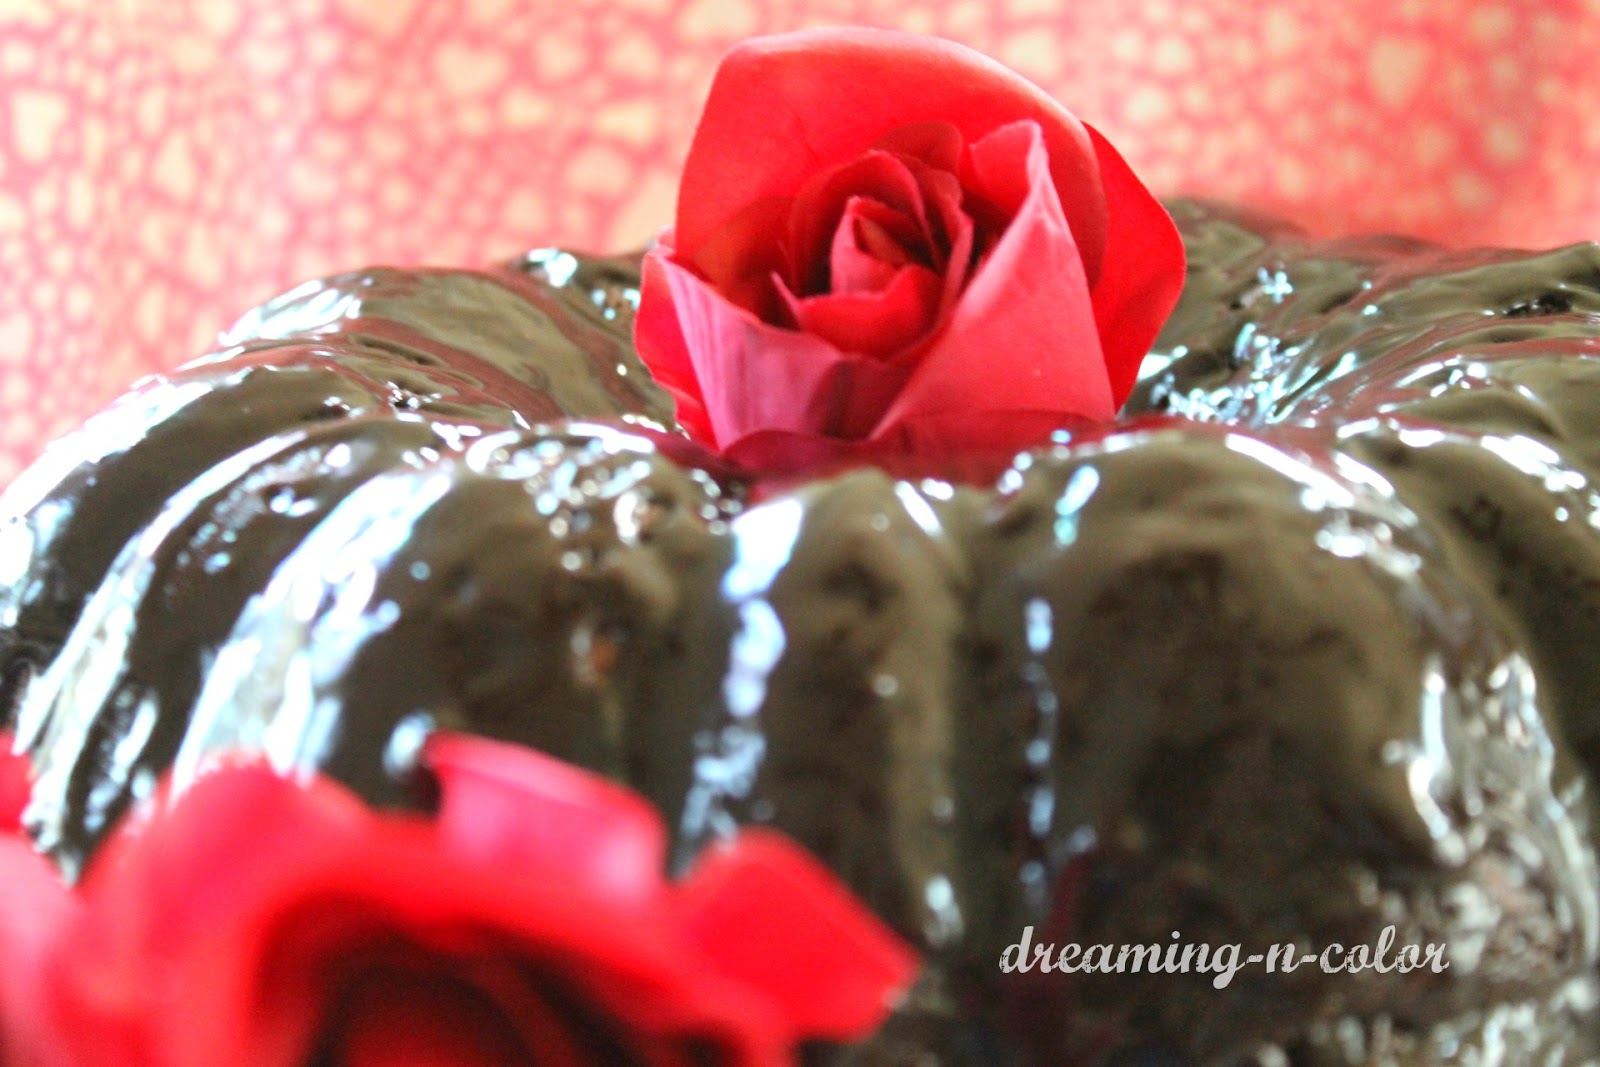 Cake With Chocolate Pudding Mix : dreamingincolor: Betty Crocker Chocolate Cake with Pudding Mix